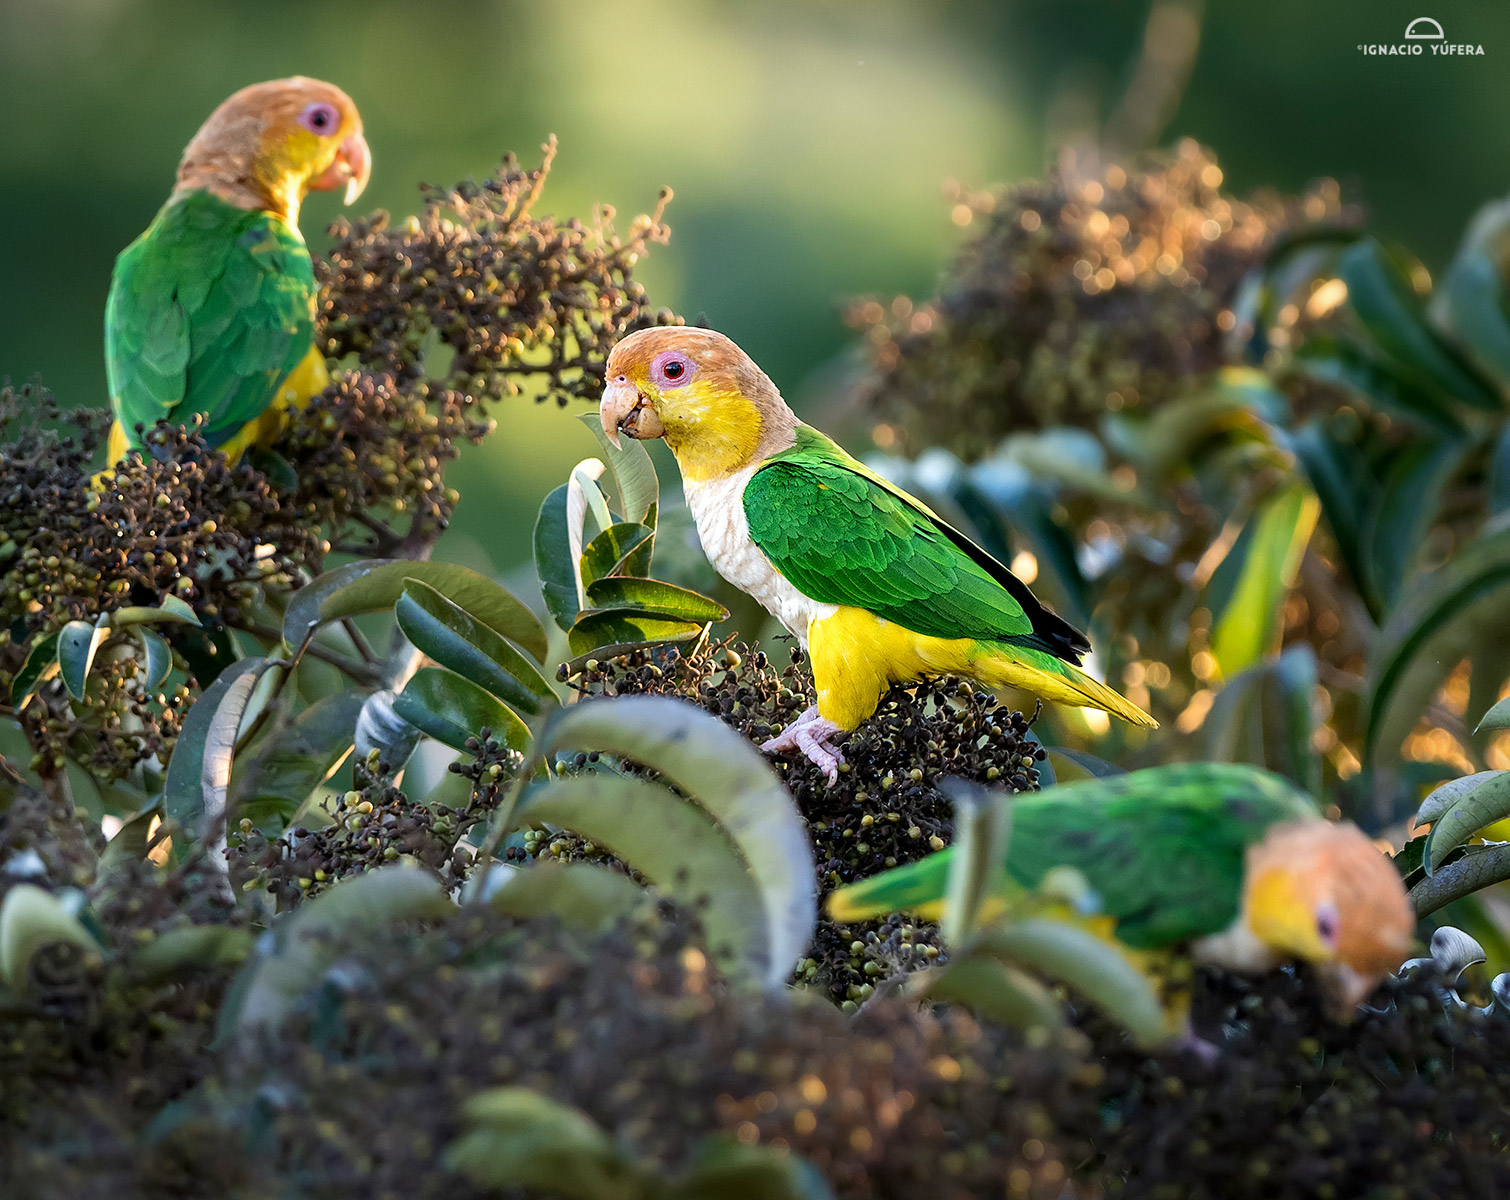 Yellow-tailed parrots